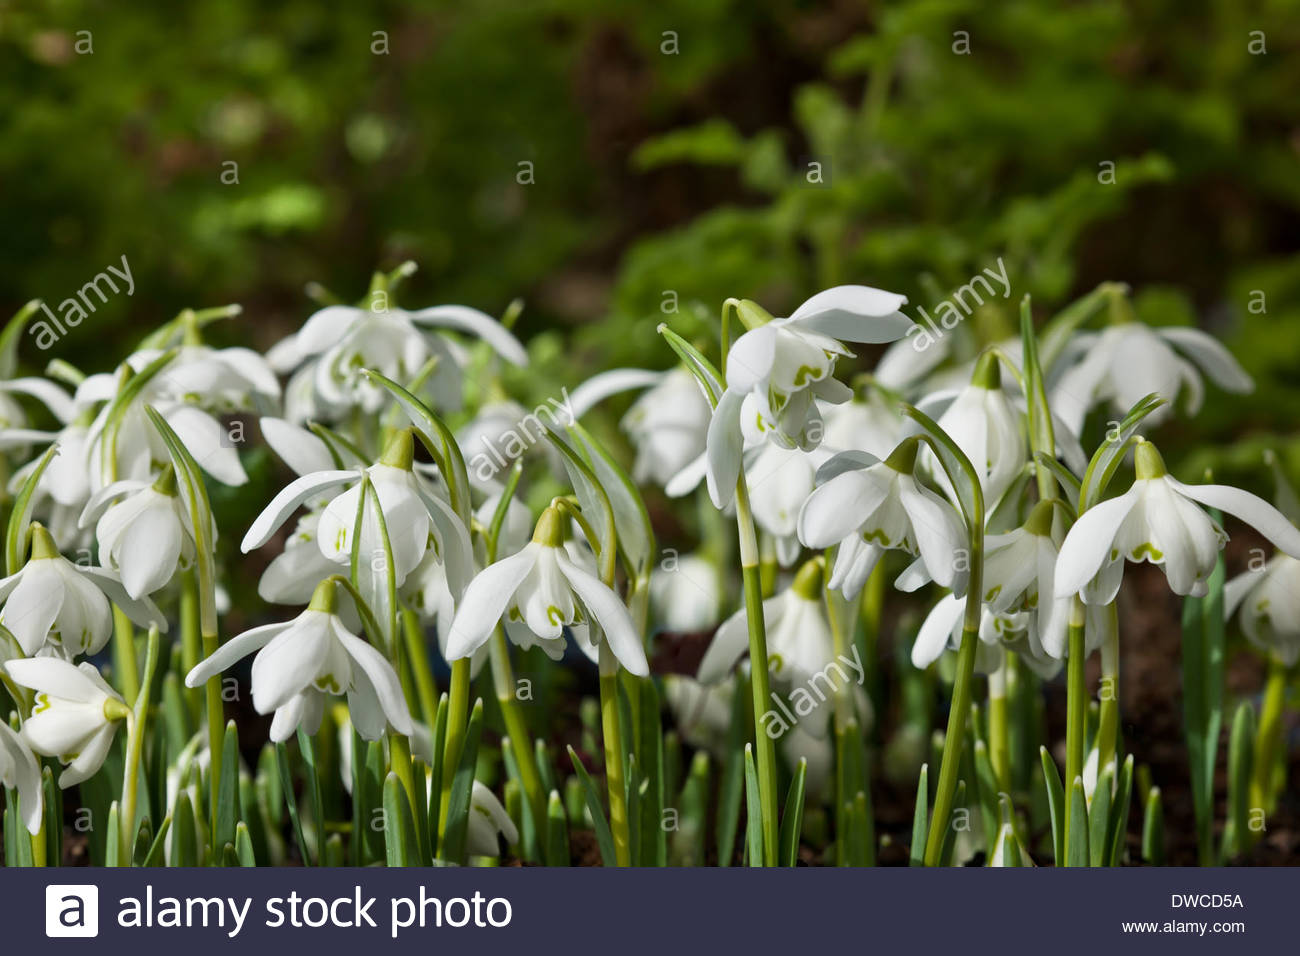 Double Snowdrop Galanthus Nivalis Stock Photos Double Snowdrop